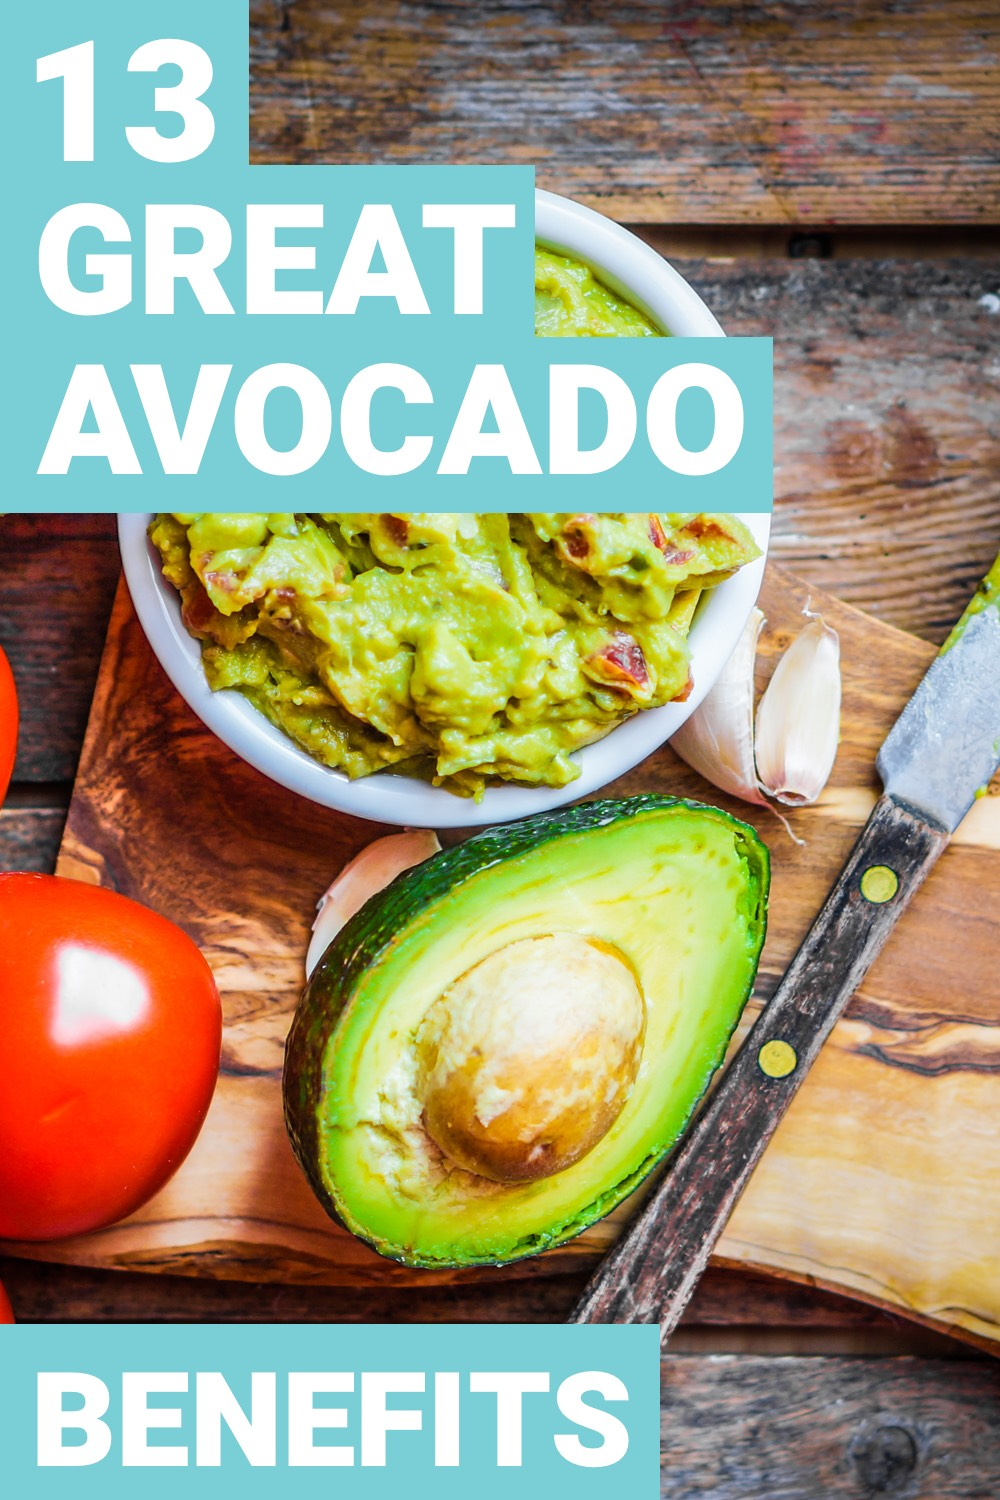 Avocados are great for anybody. But it's important to know the health benefits of avocados. Here are 13 health benefits of avocados.